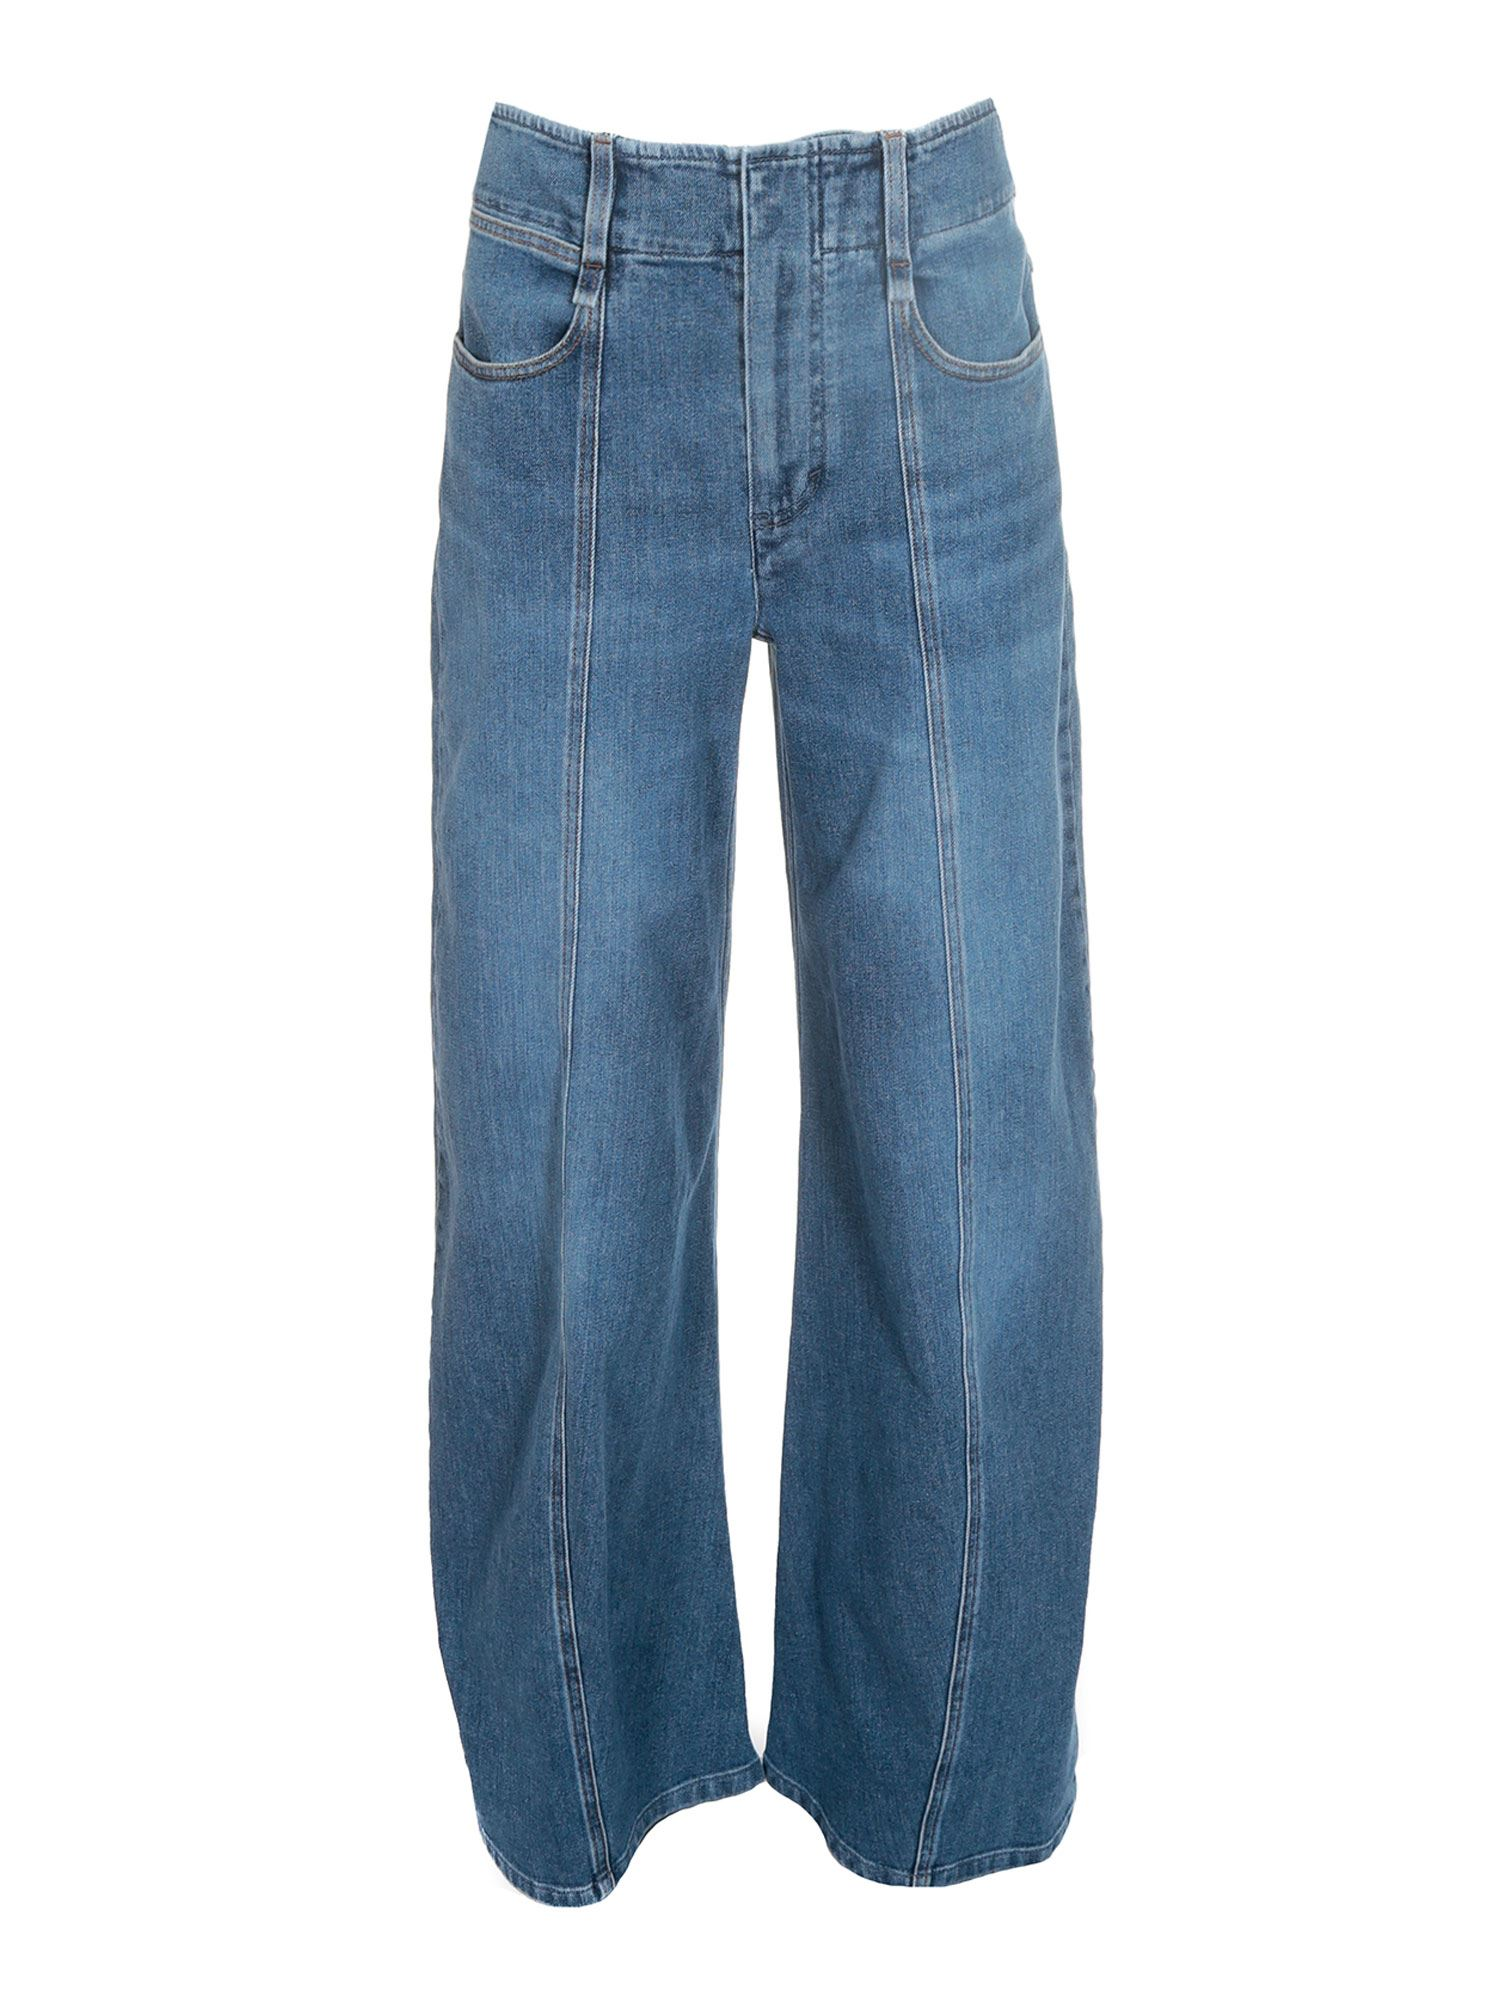 Chloé Cottons WIDE JEANS IN BLUE